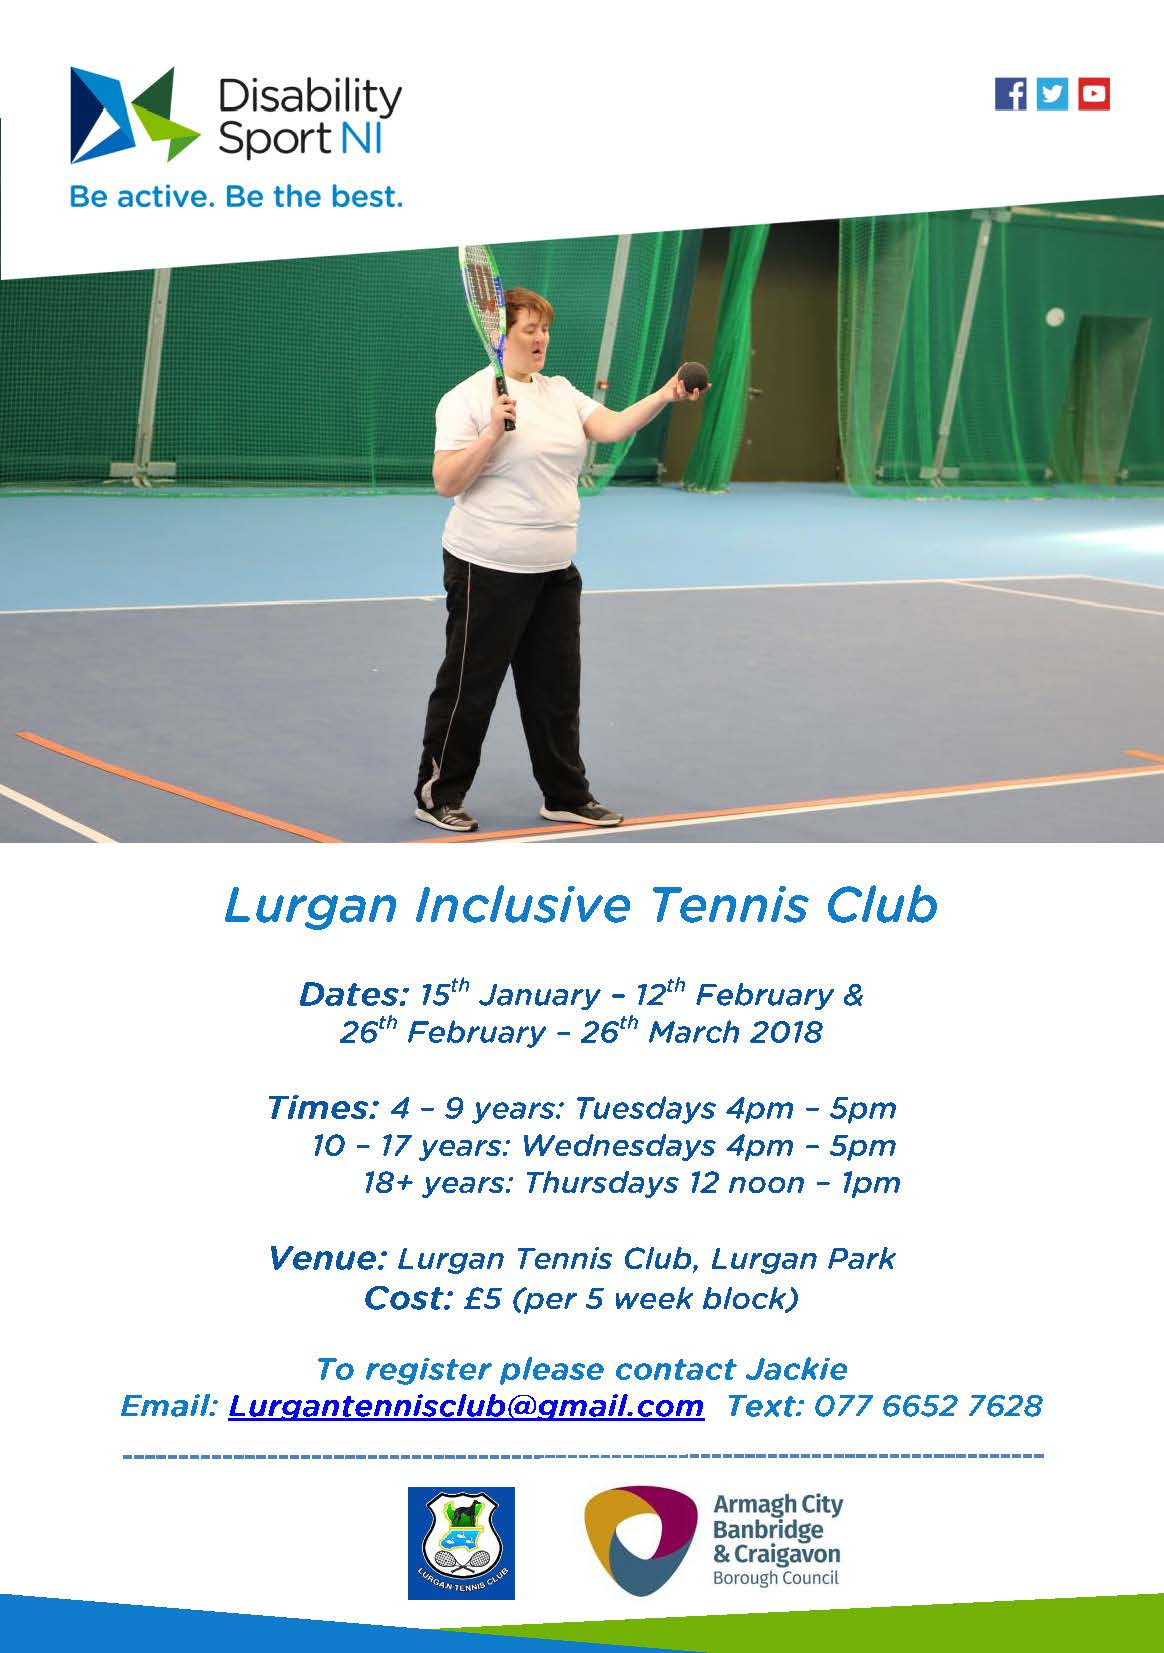 Lurgan Inclusive Tennis Club flyer, alternayive formats available upon request